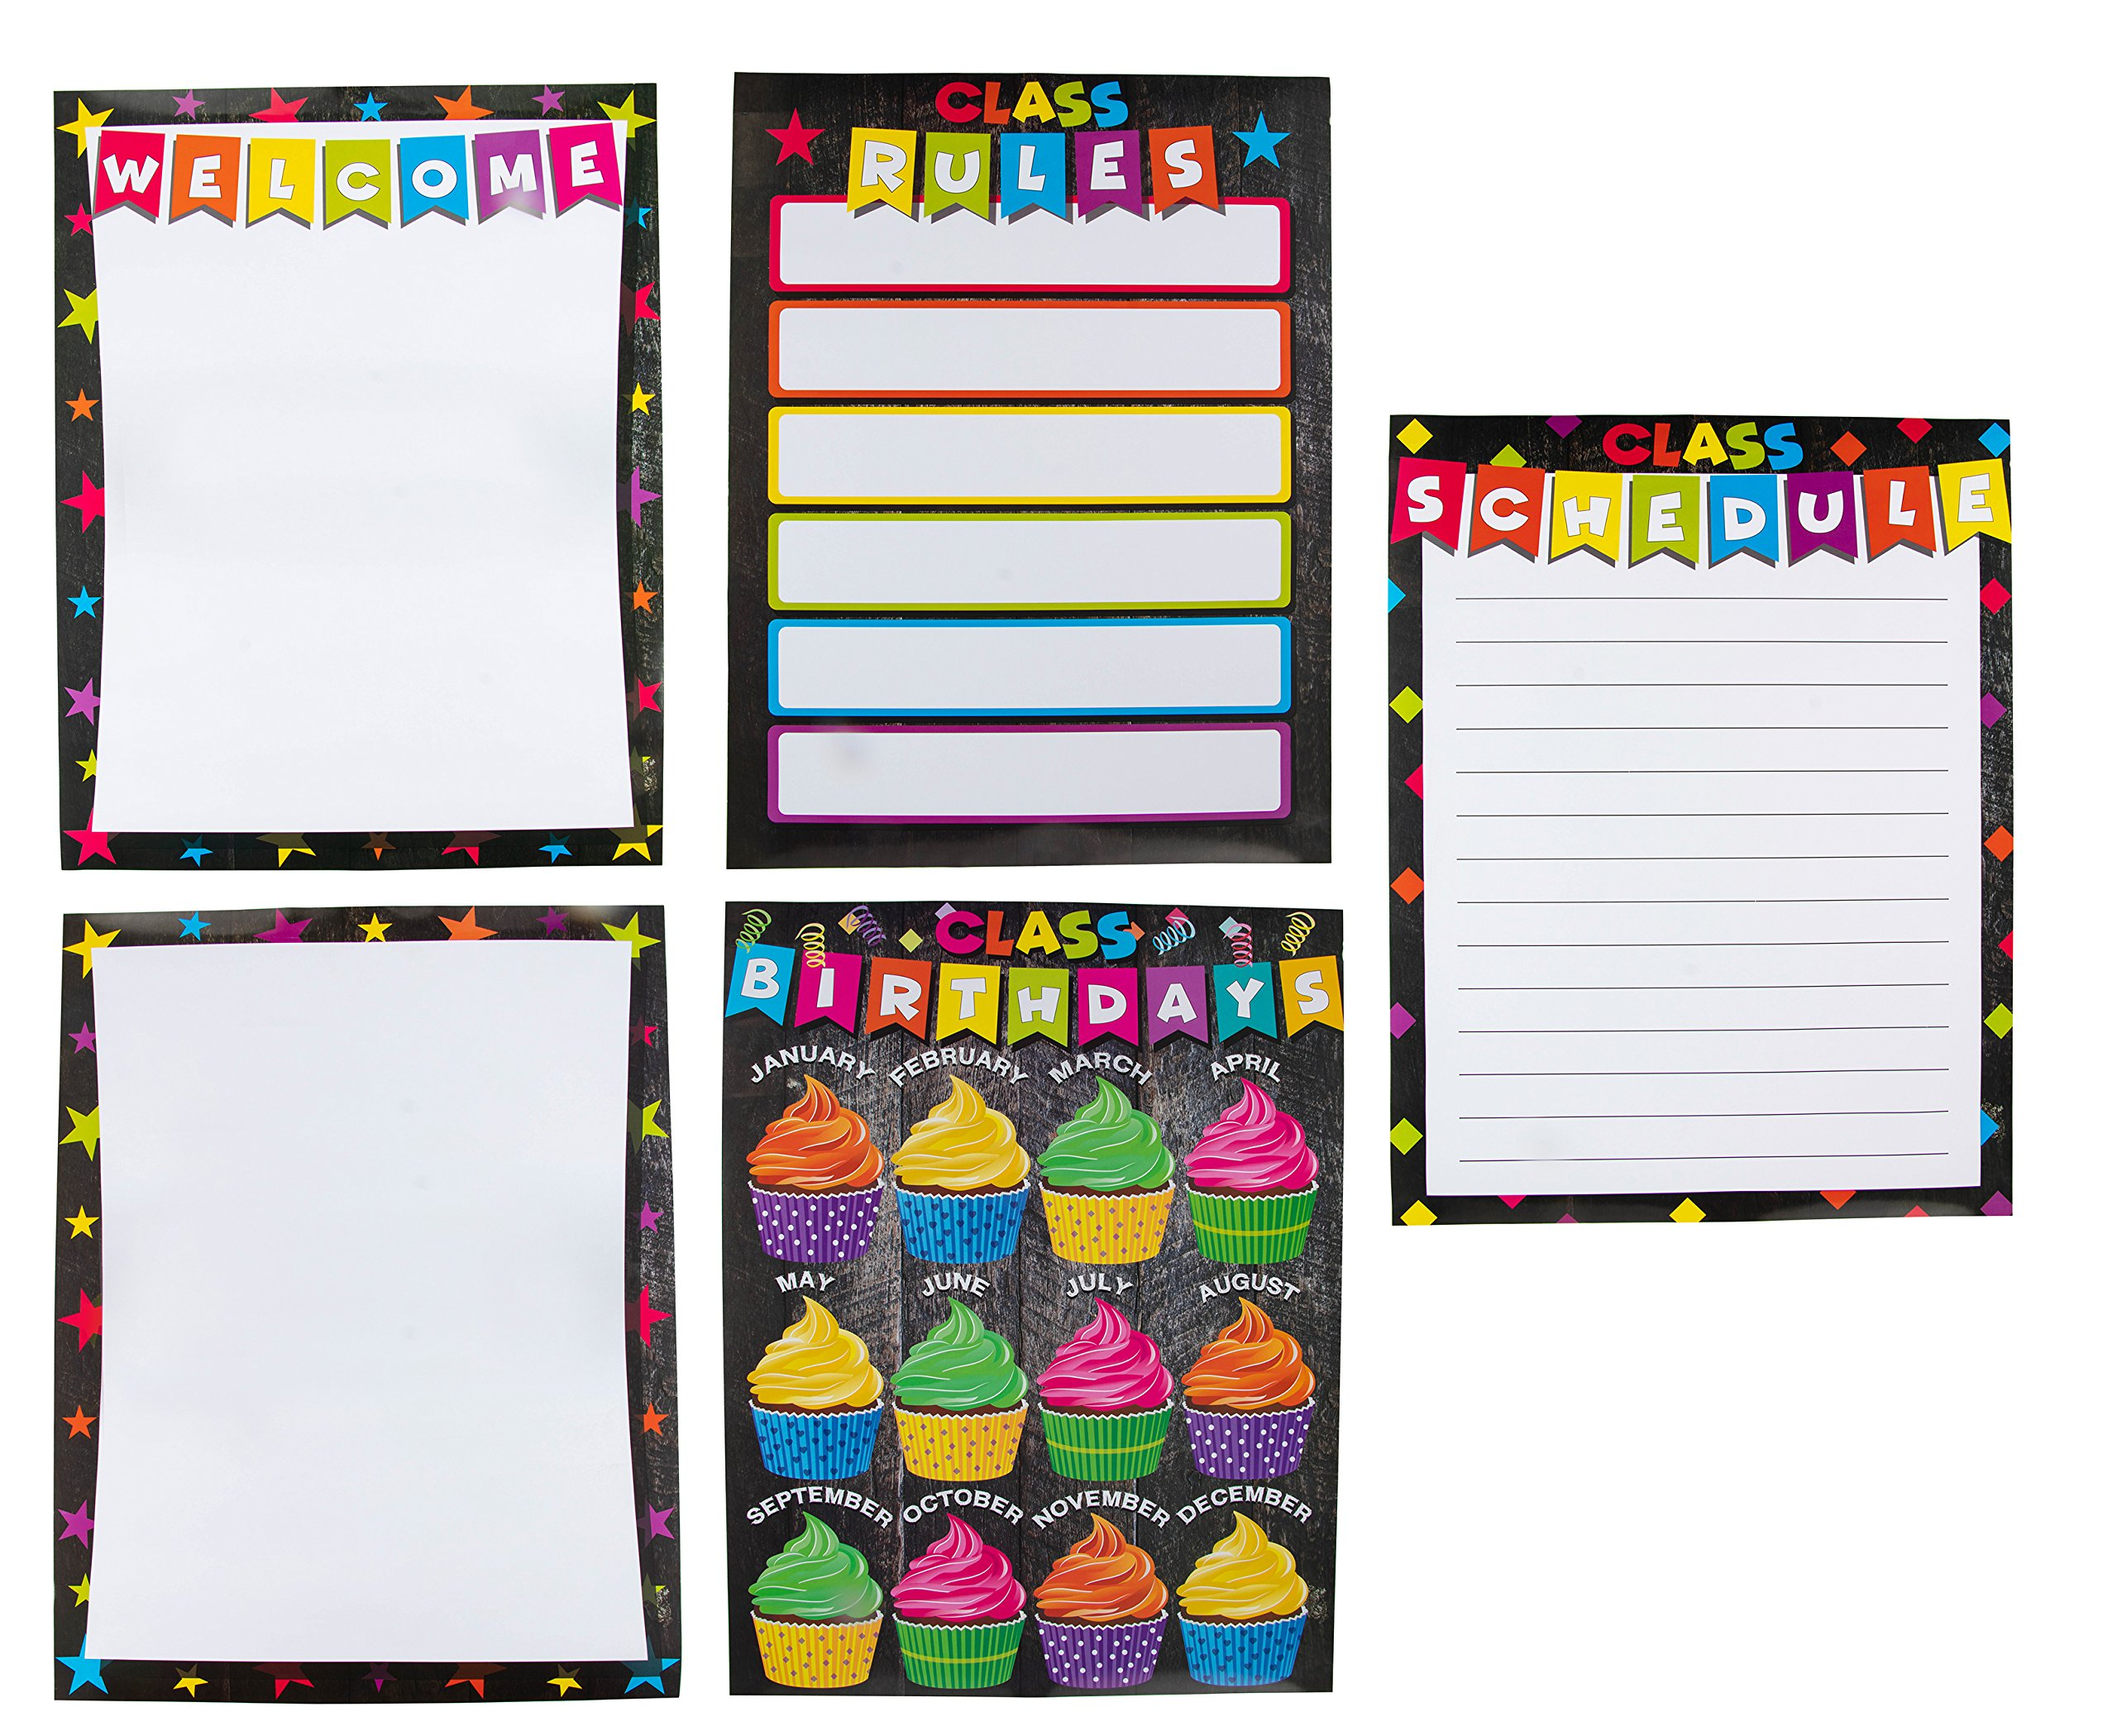 Classroom Poster - 5-Pack Classroom Essentials Charts with Welcome, Classroom Schedule, Rules, Birthdays, and Blank One for Teachers, Kindergarten, Elementary, Middle School, 157GSM, 17 x 22 inches